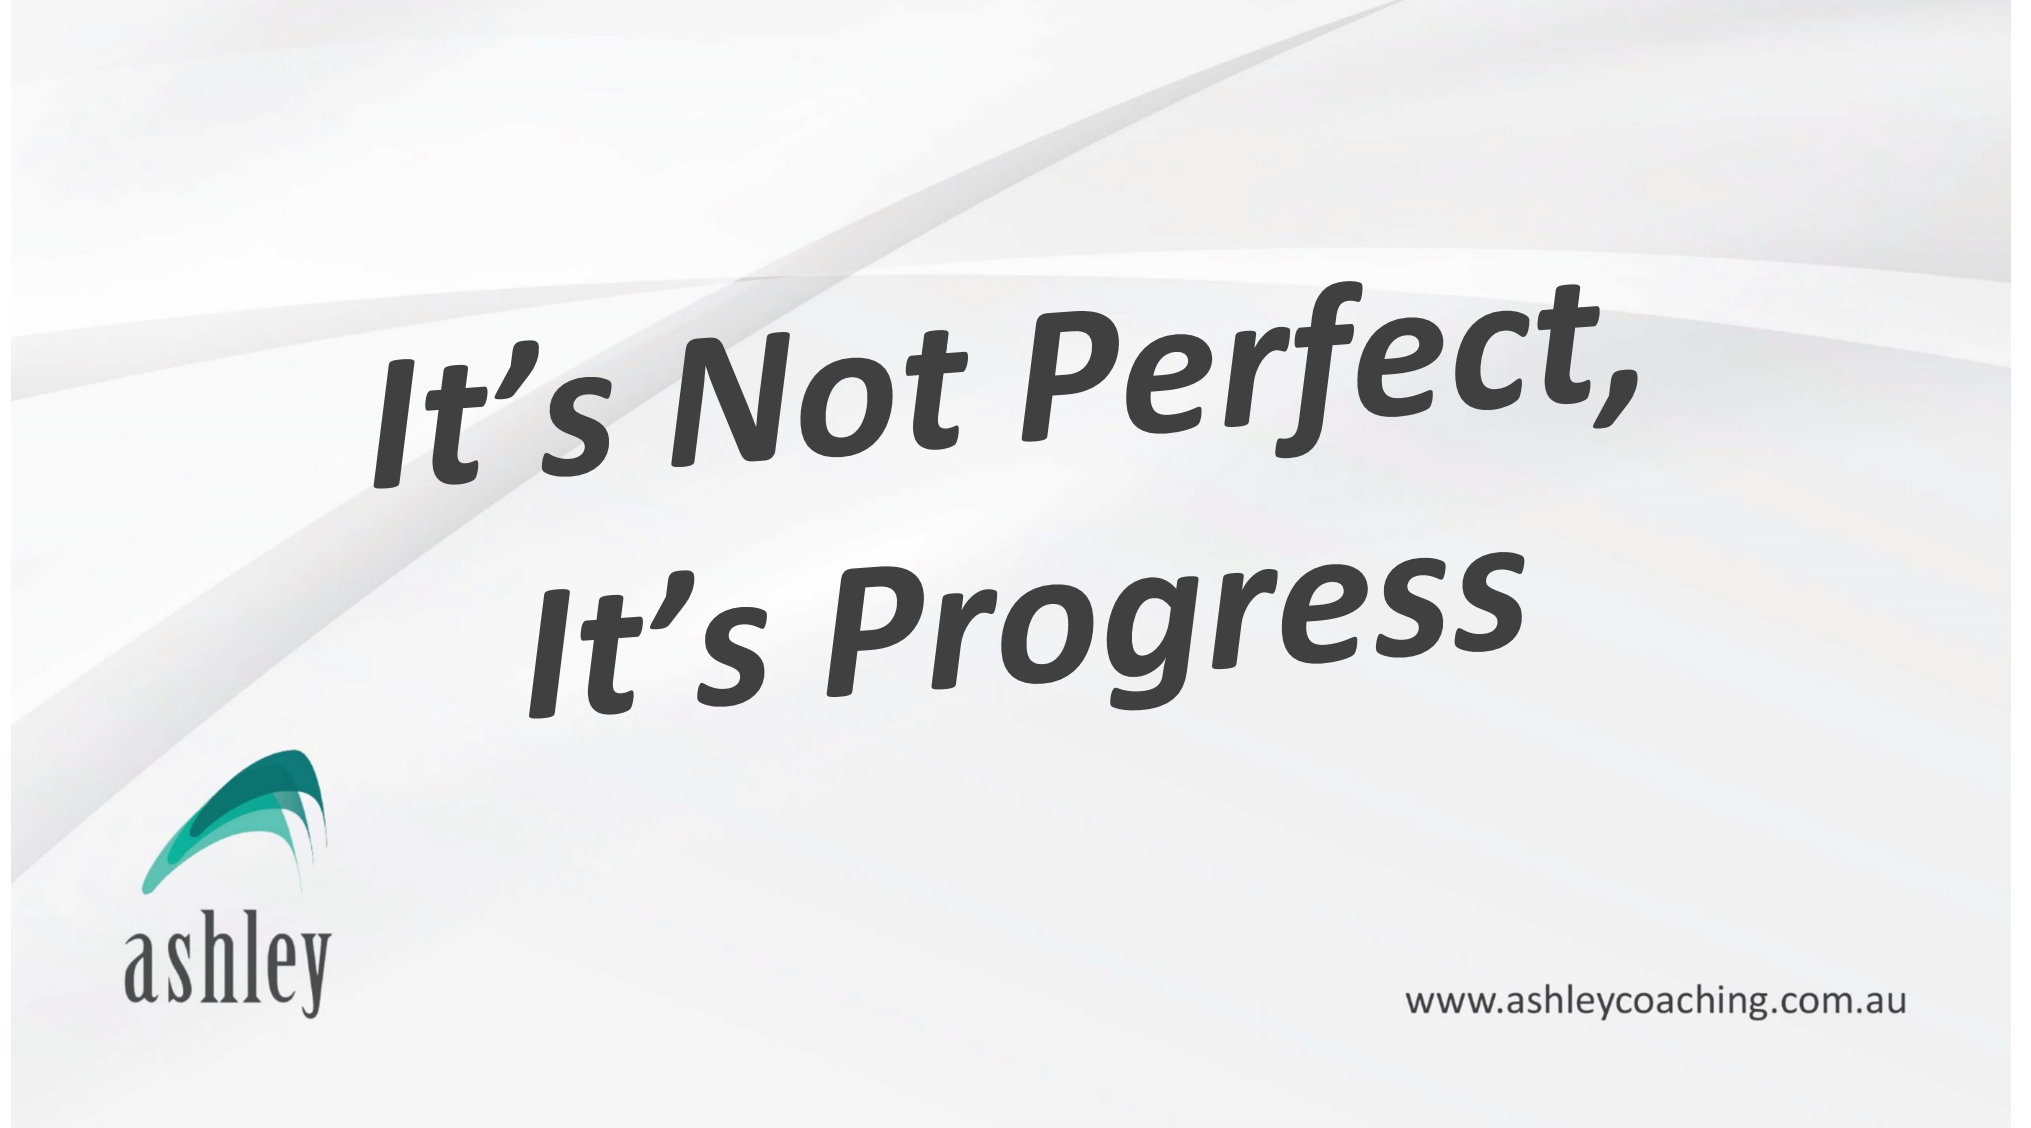 It's Not Perfect, It's Progress